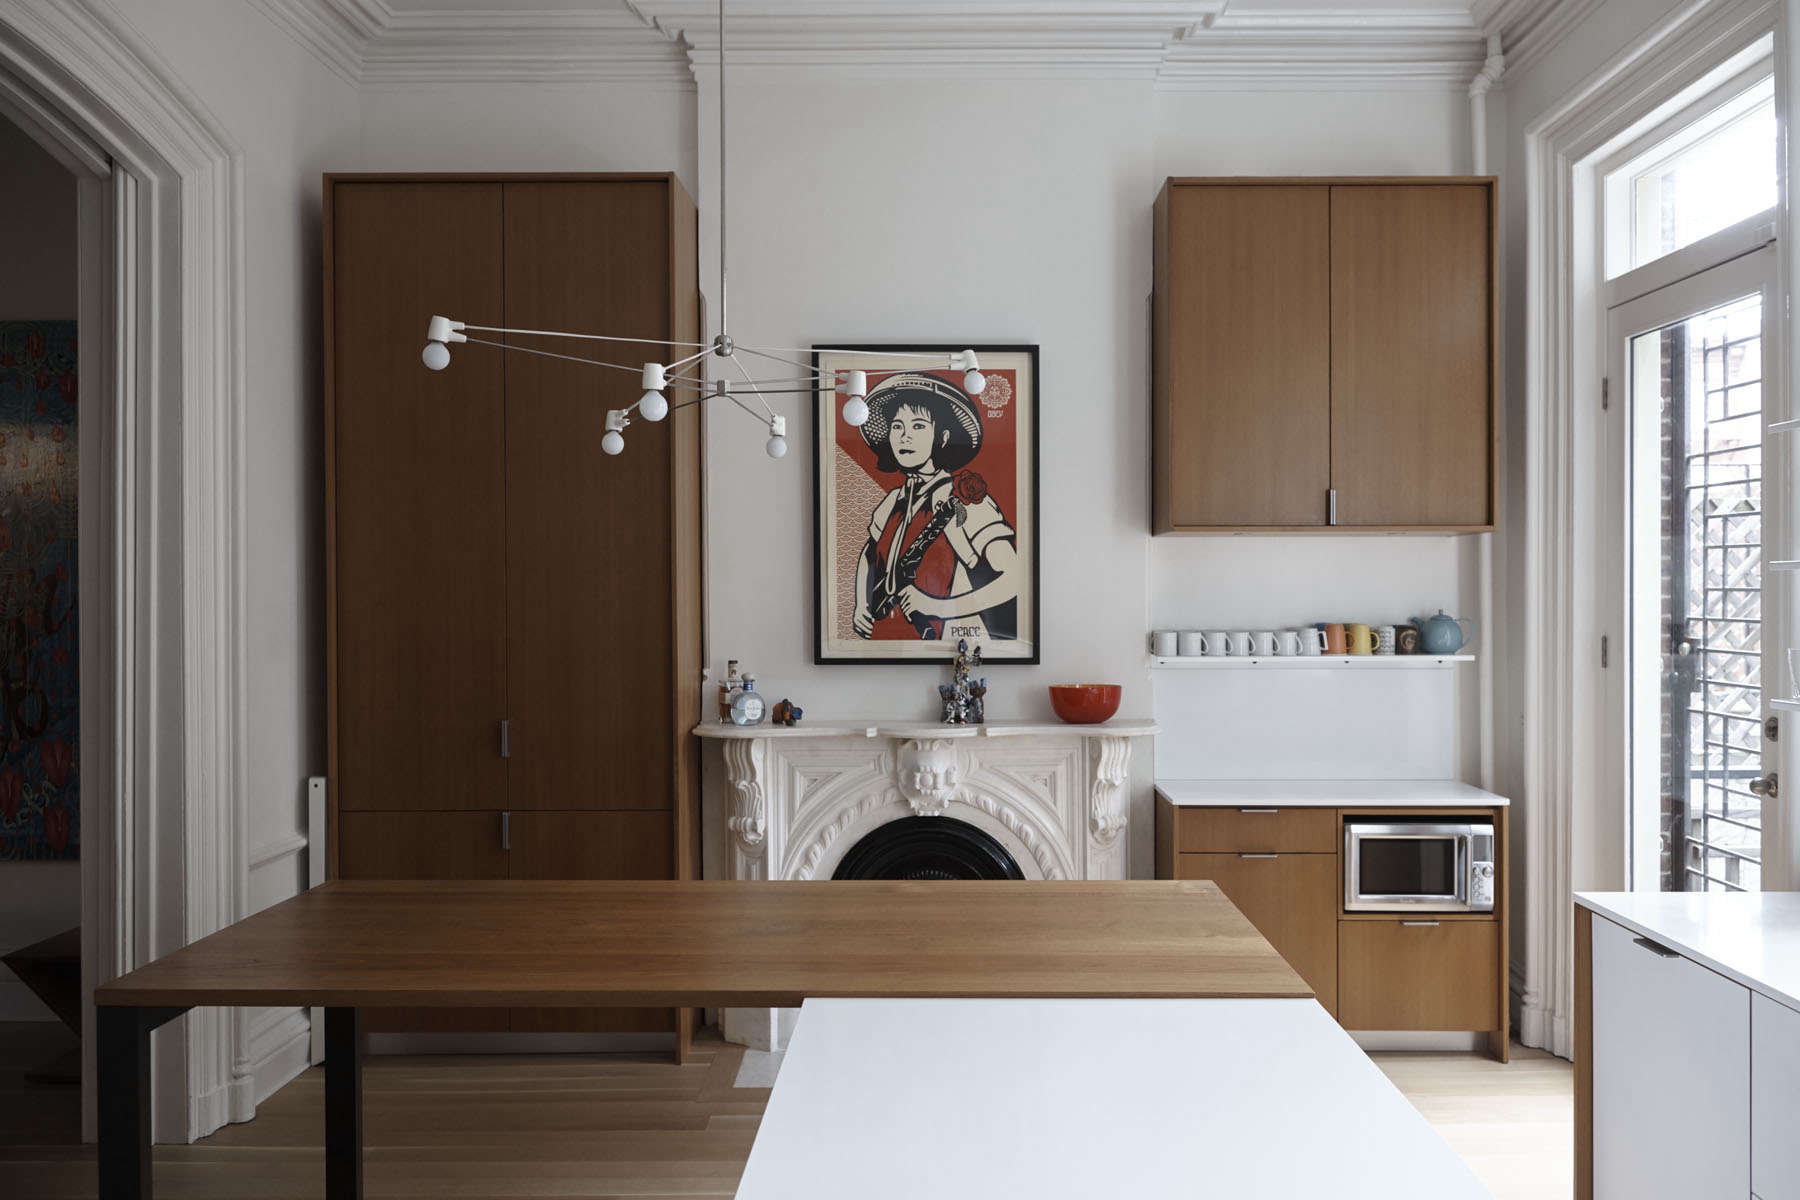 Kitchen cabinets eastern ct - Kitchen Of The Week A Something Old Something New Kitchen In Brooklyn